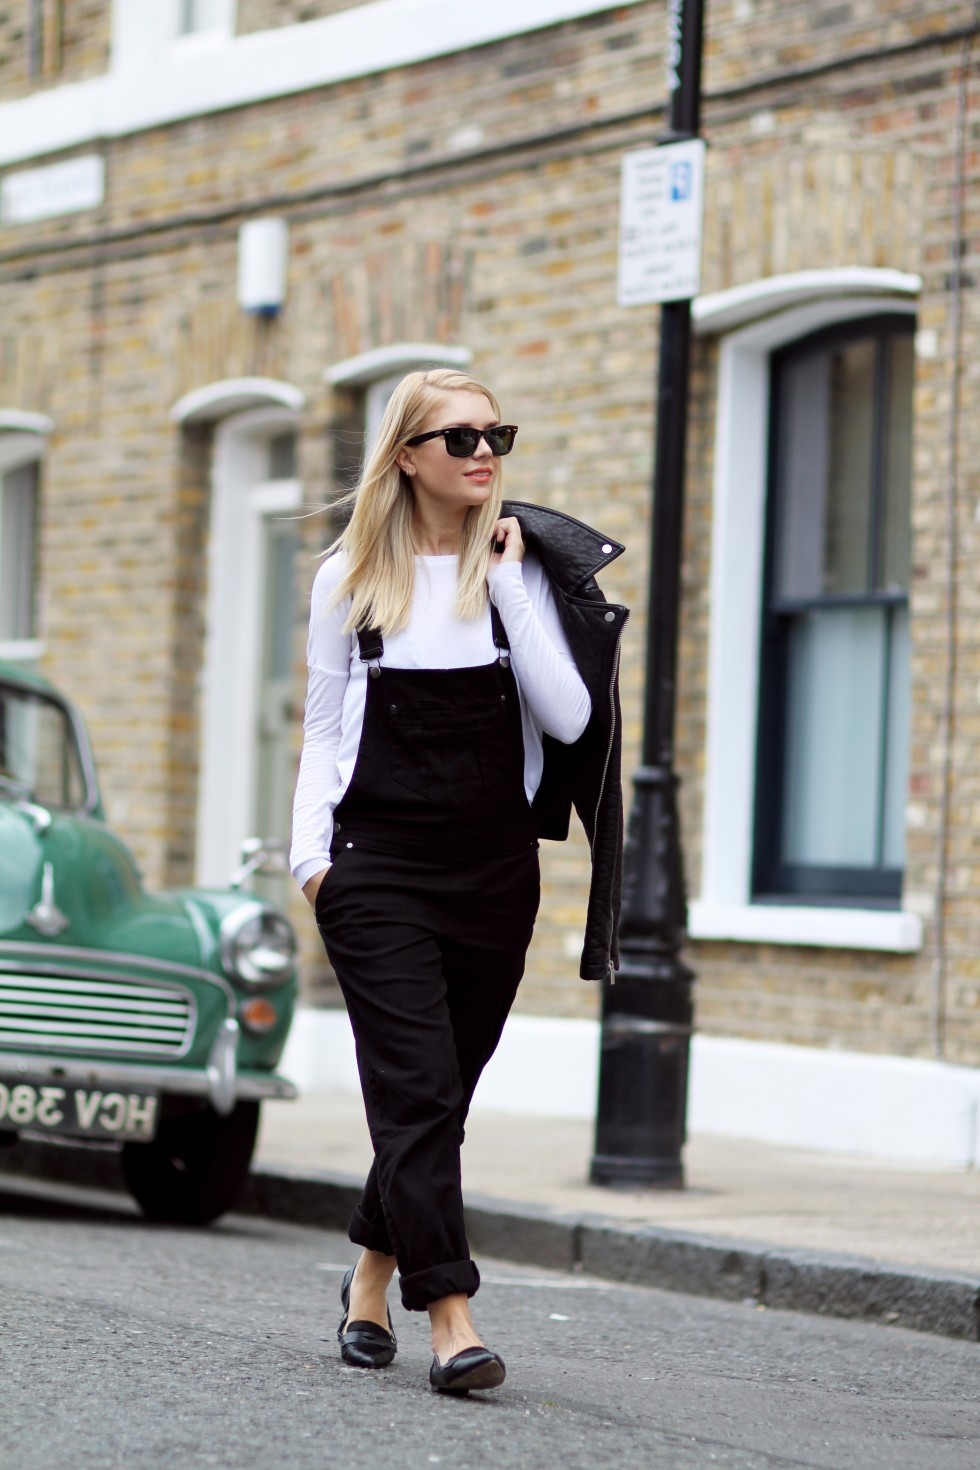 Isabella Thordsen is wearing shoes, dungaree's and a leather jacket from Asos